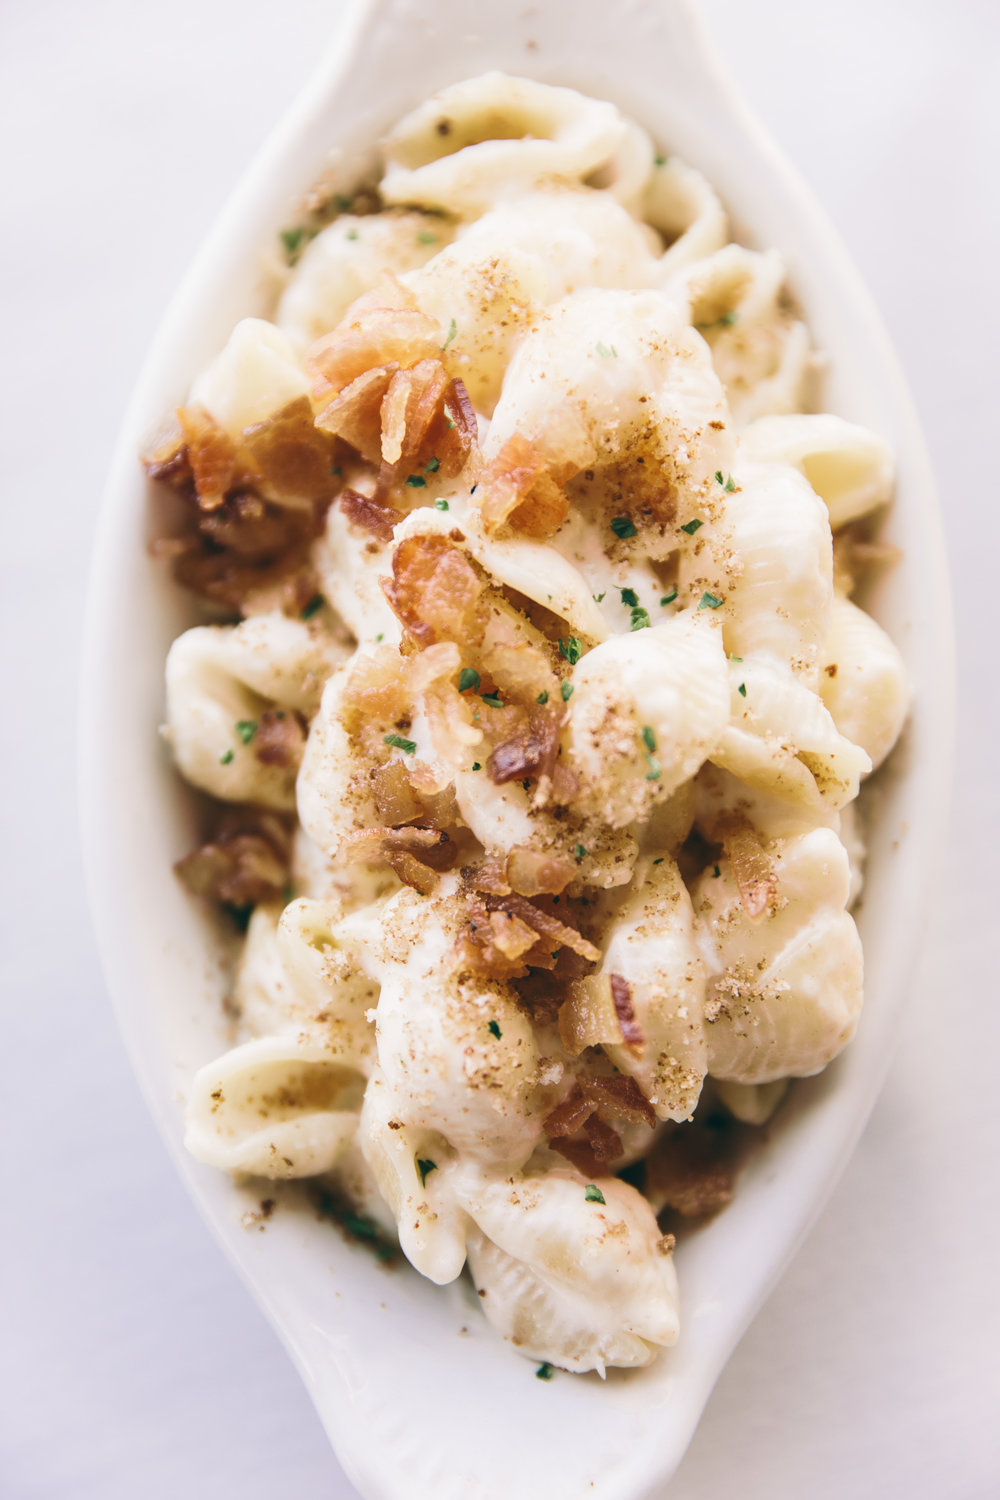 Fannie's Mac & Cheese